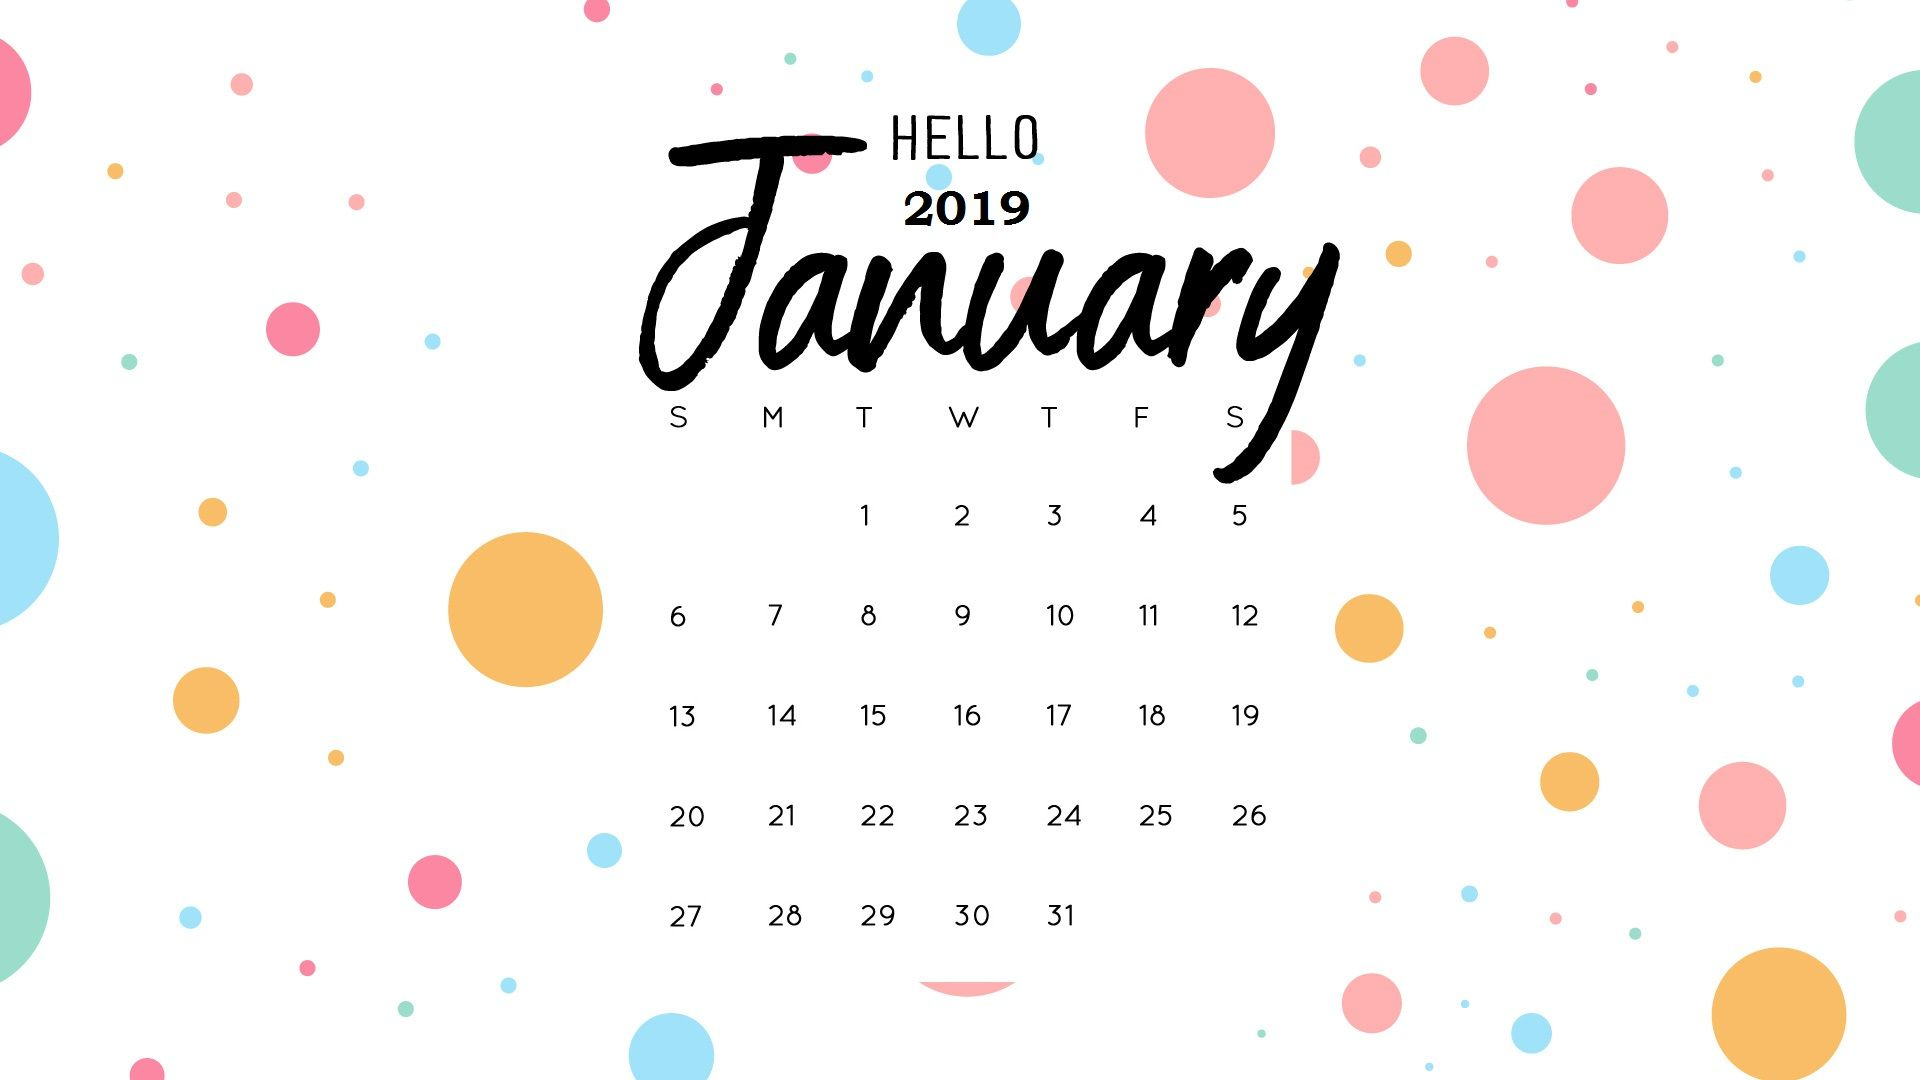 Printable Calendar January 2019 Wallpaper